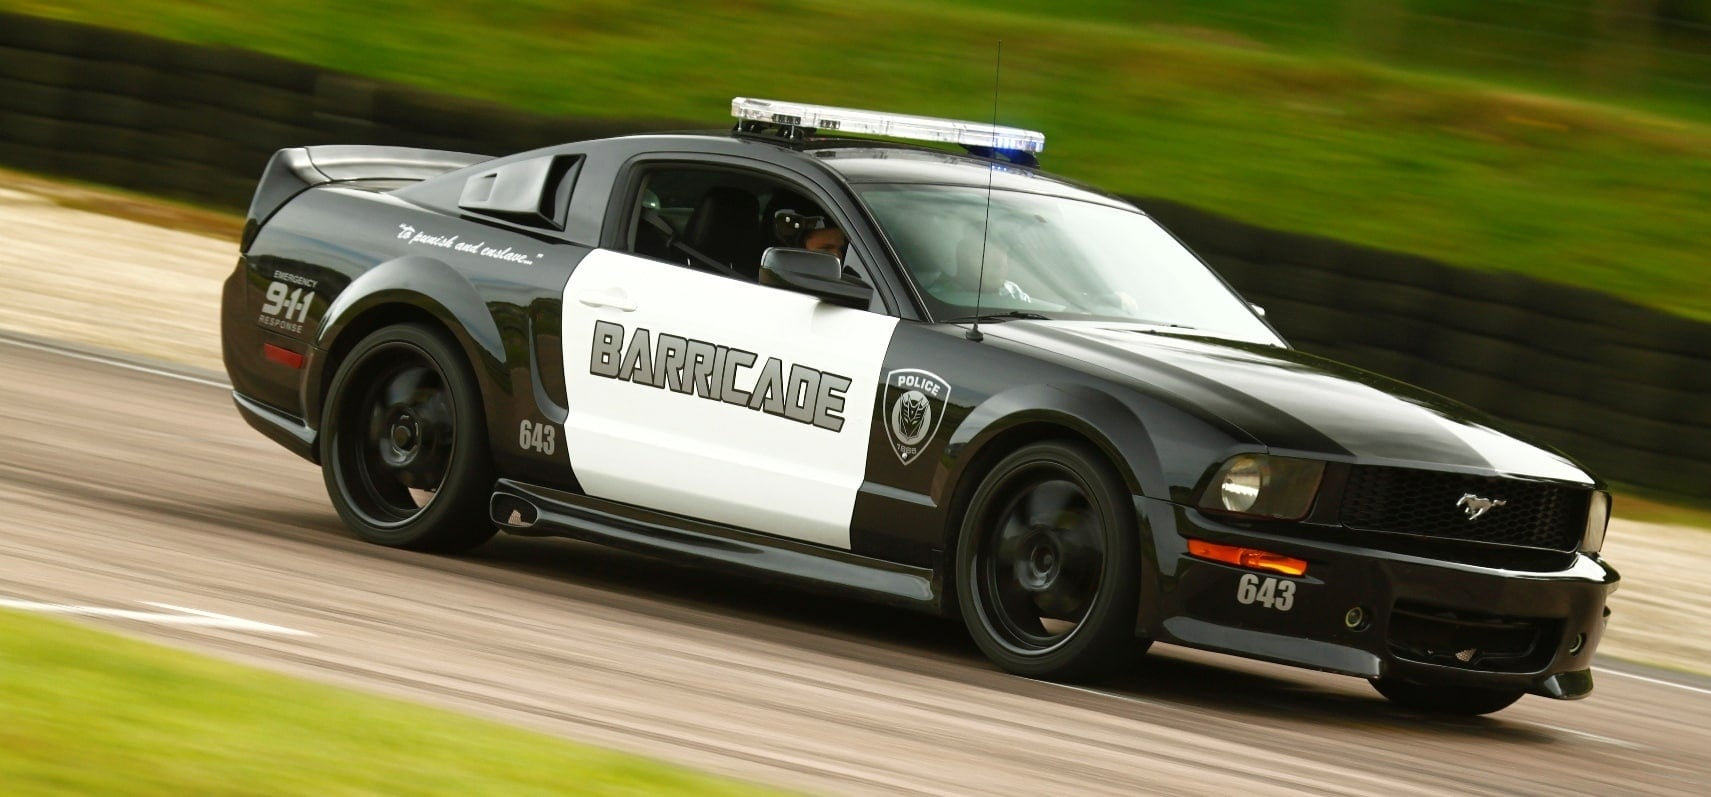 'Barricade' Mustang GT Experience-8